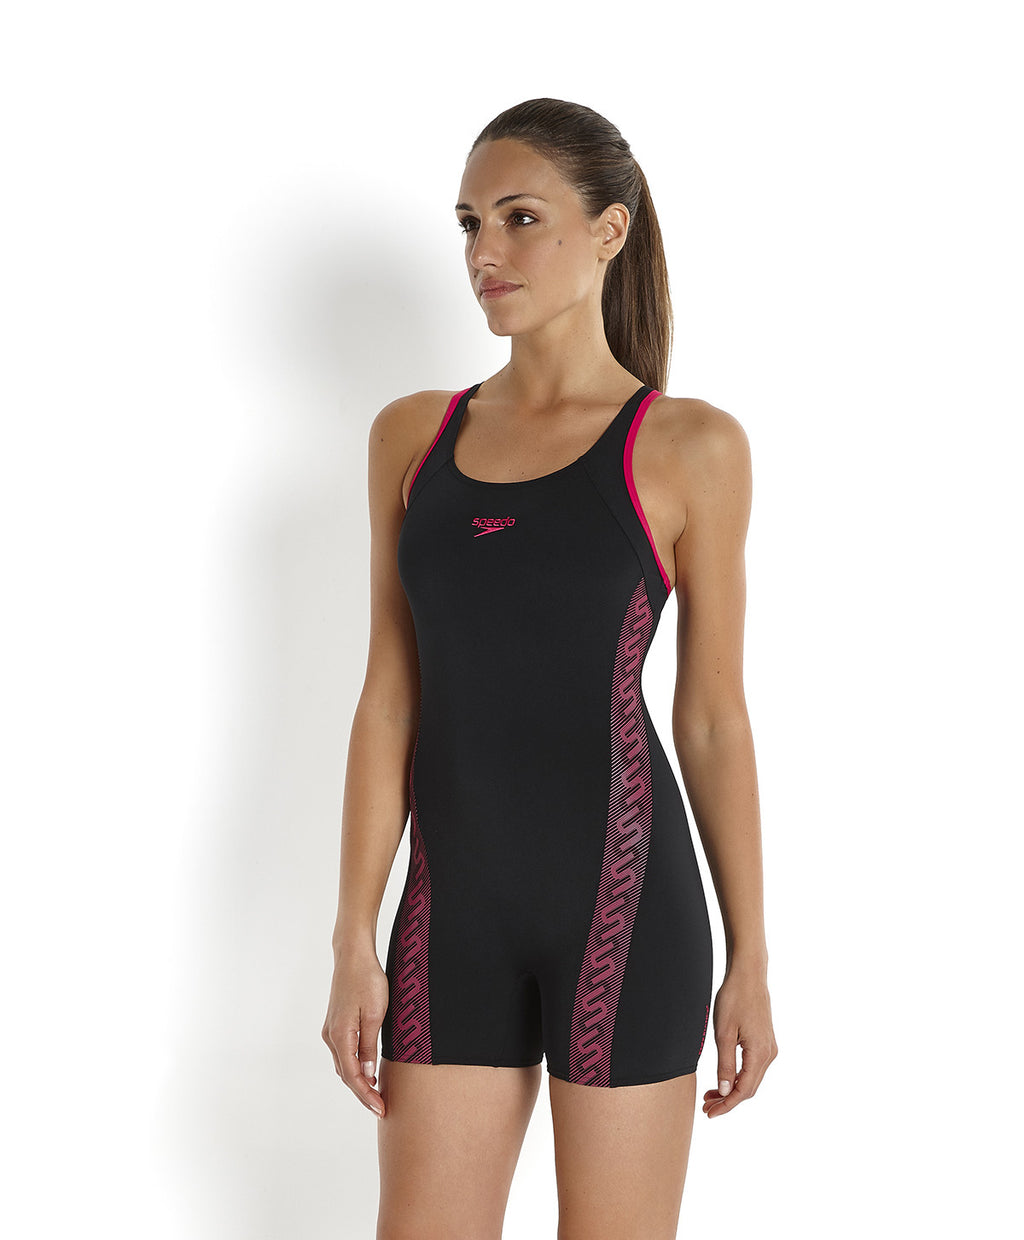 Speedo Monogram Legsuit